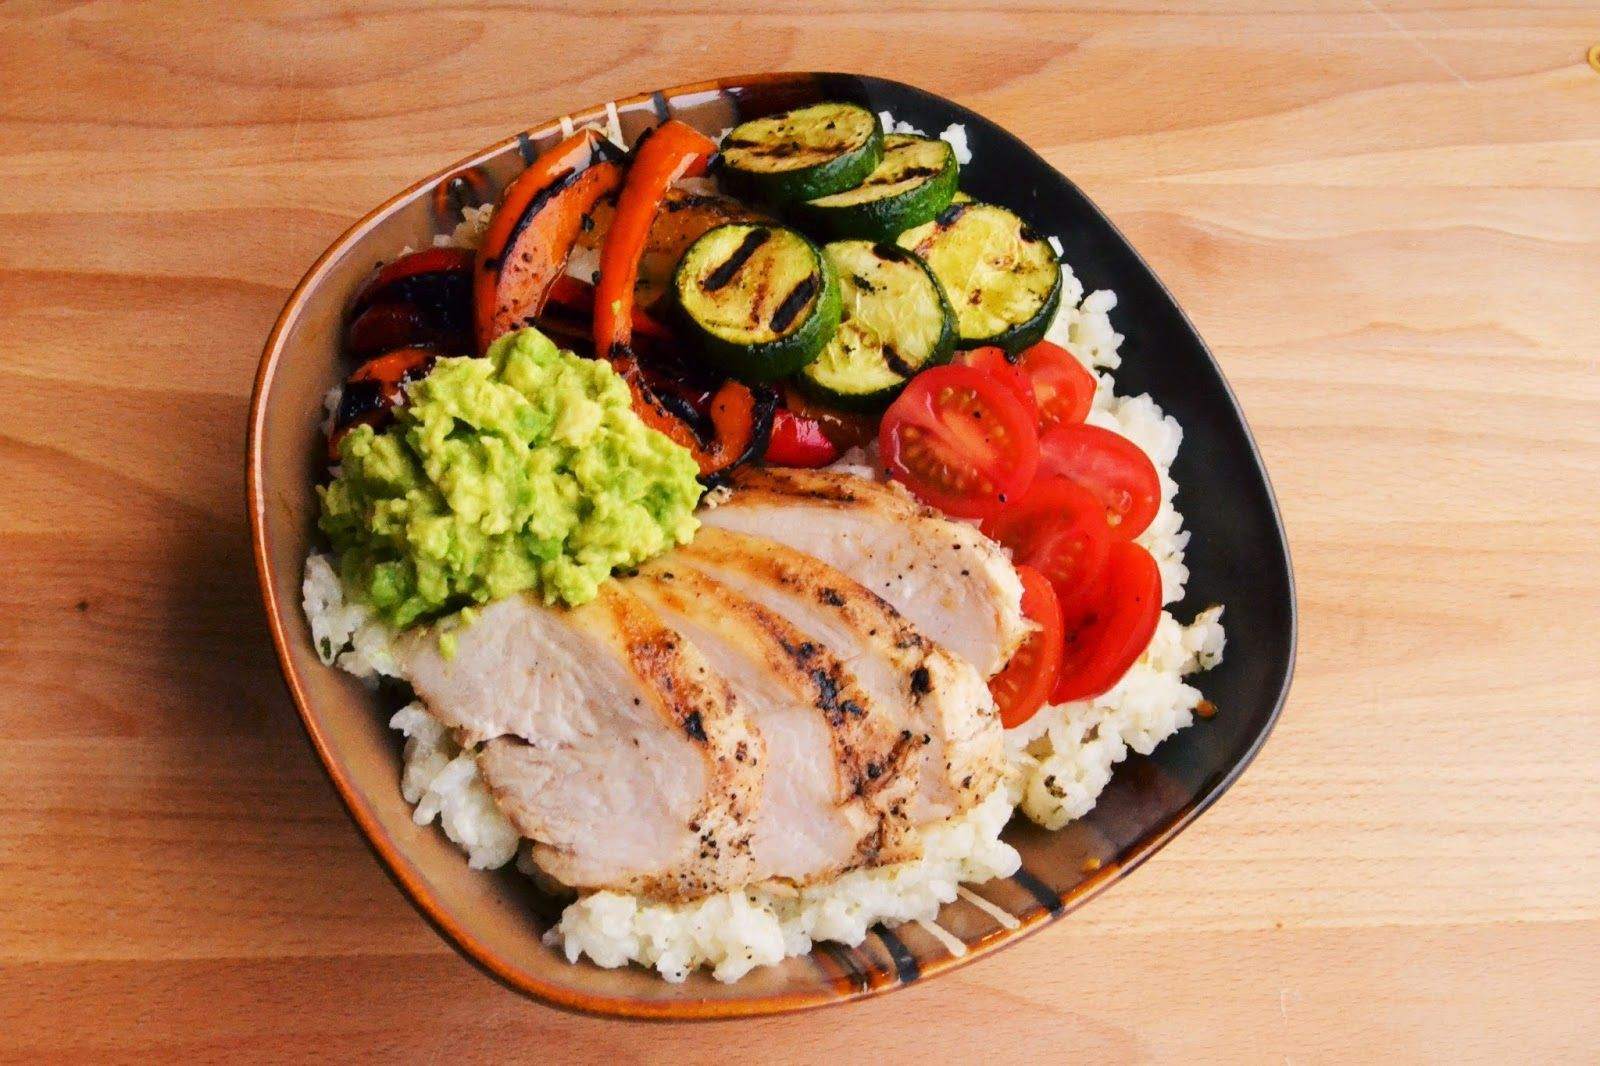 7kidsathome: Grilled Chicken and Vegetable Bowl with Parmesan Rice and Avocado #grilledchickenparmesan This #7kidsathome: Grilled Chicken and Vegetable Bowl with Parmesan Rice and Avocado is a good for your Breakfast made with awesome ingredients! Dairy, #Healthy, Gluten Free, grain free and paleo too!, Our #grilled chicken vegetables parmesan Recipes very delicious, we can try to make this #Grilled Garlic Parmesan Vegetables  Tone and Tighten recipes at home.Read More About This Recipe  Click h #grilledchickenparmesan